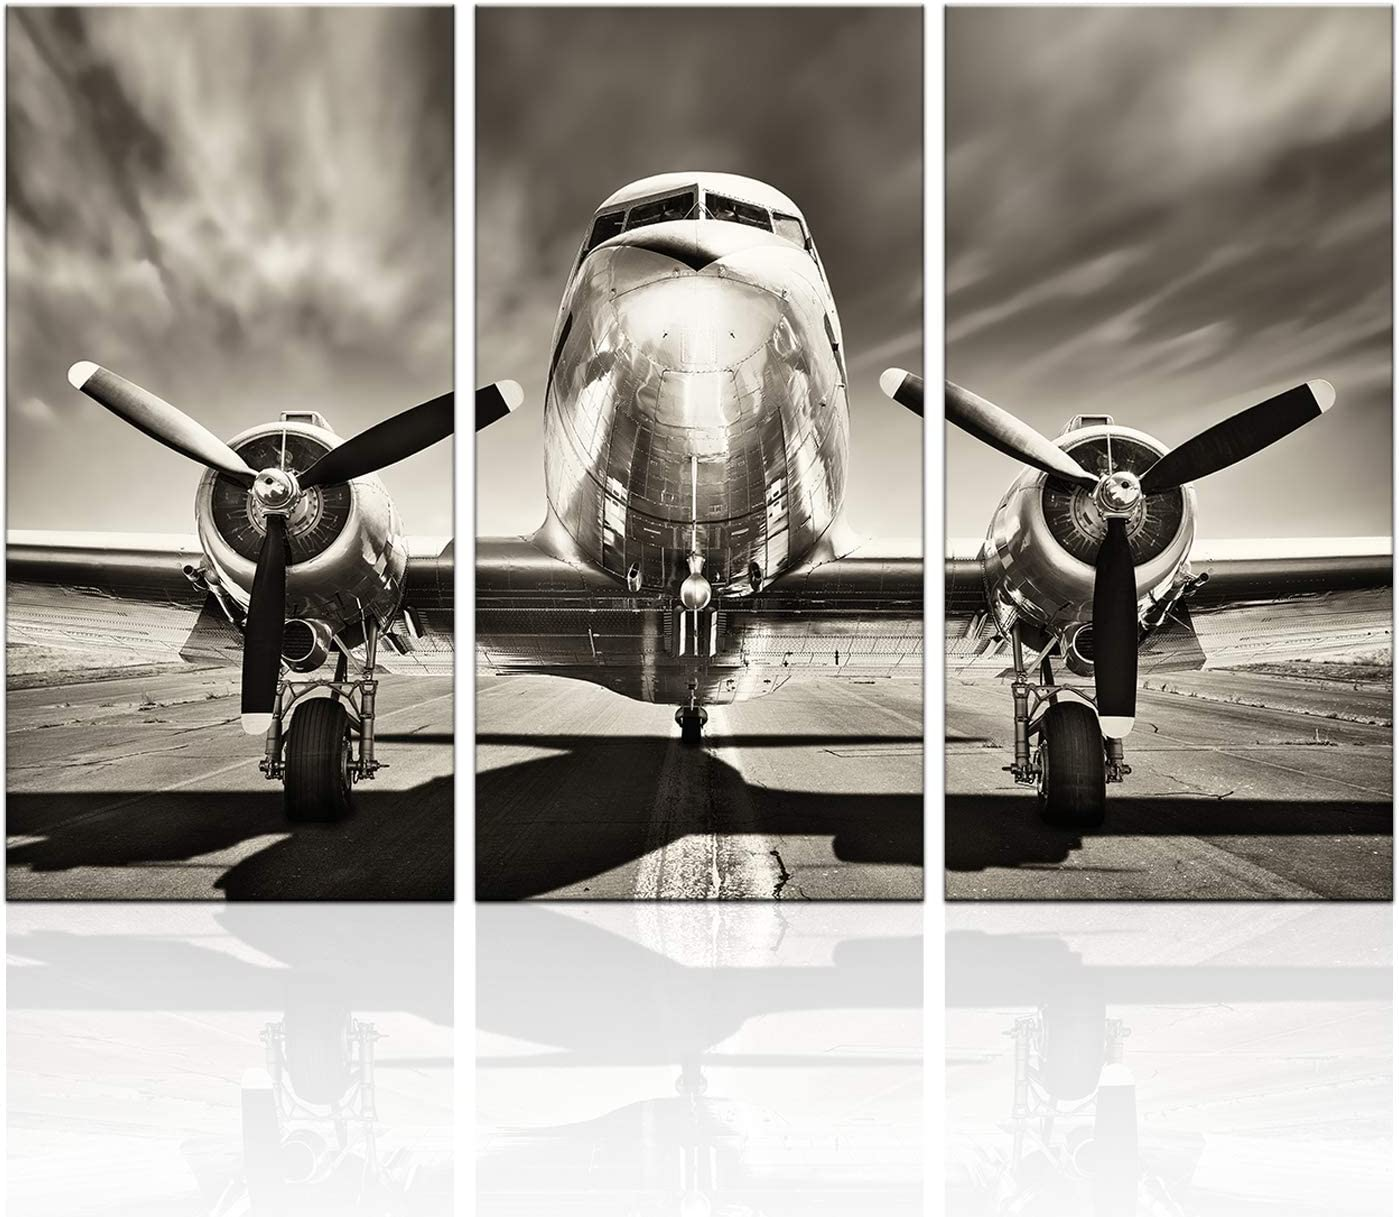 KLVOS 3 Piece Airplane Wall Art Vintage Black and white Propeller Aircraft Picture